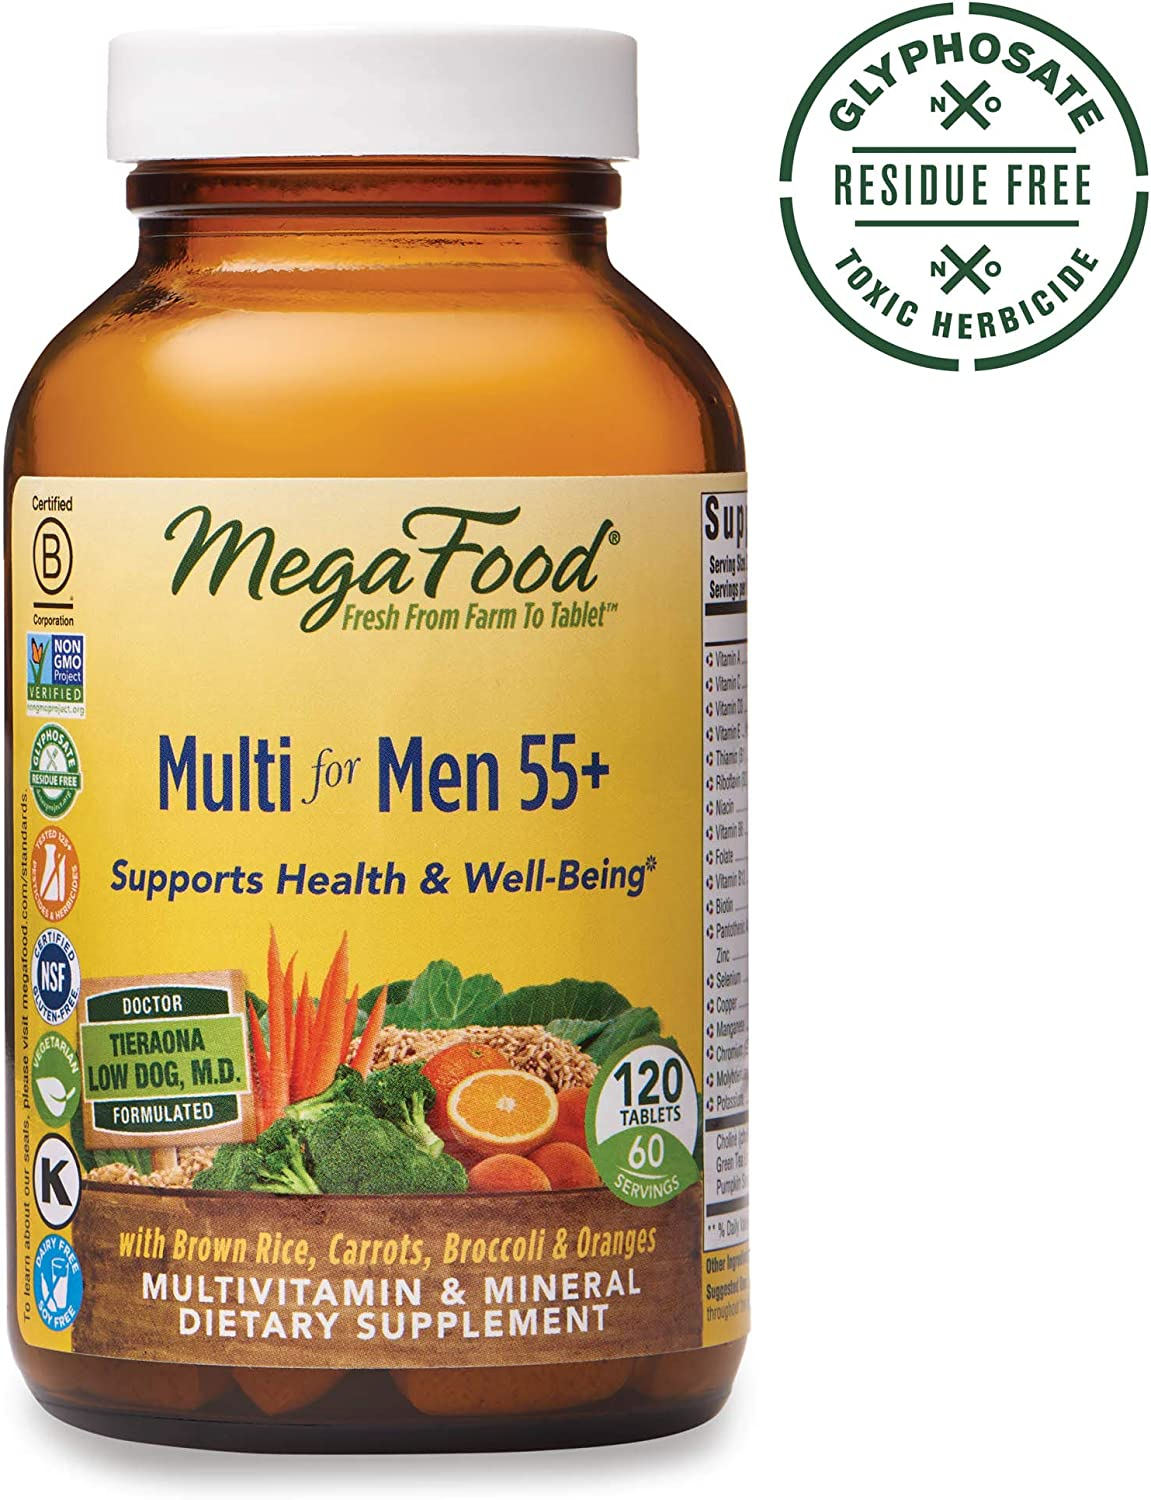 MegaFood – Multi for Men 55 , Multivitamin Support for Energy Production, Brain Function, Prostate and Heart Health with Zinc and Methylated Folate, Vegetarian, Gluten-Free, Non-GMO, 120 Tablets